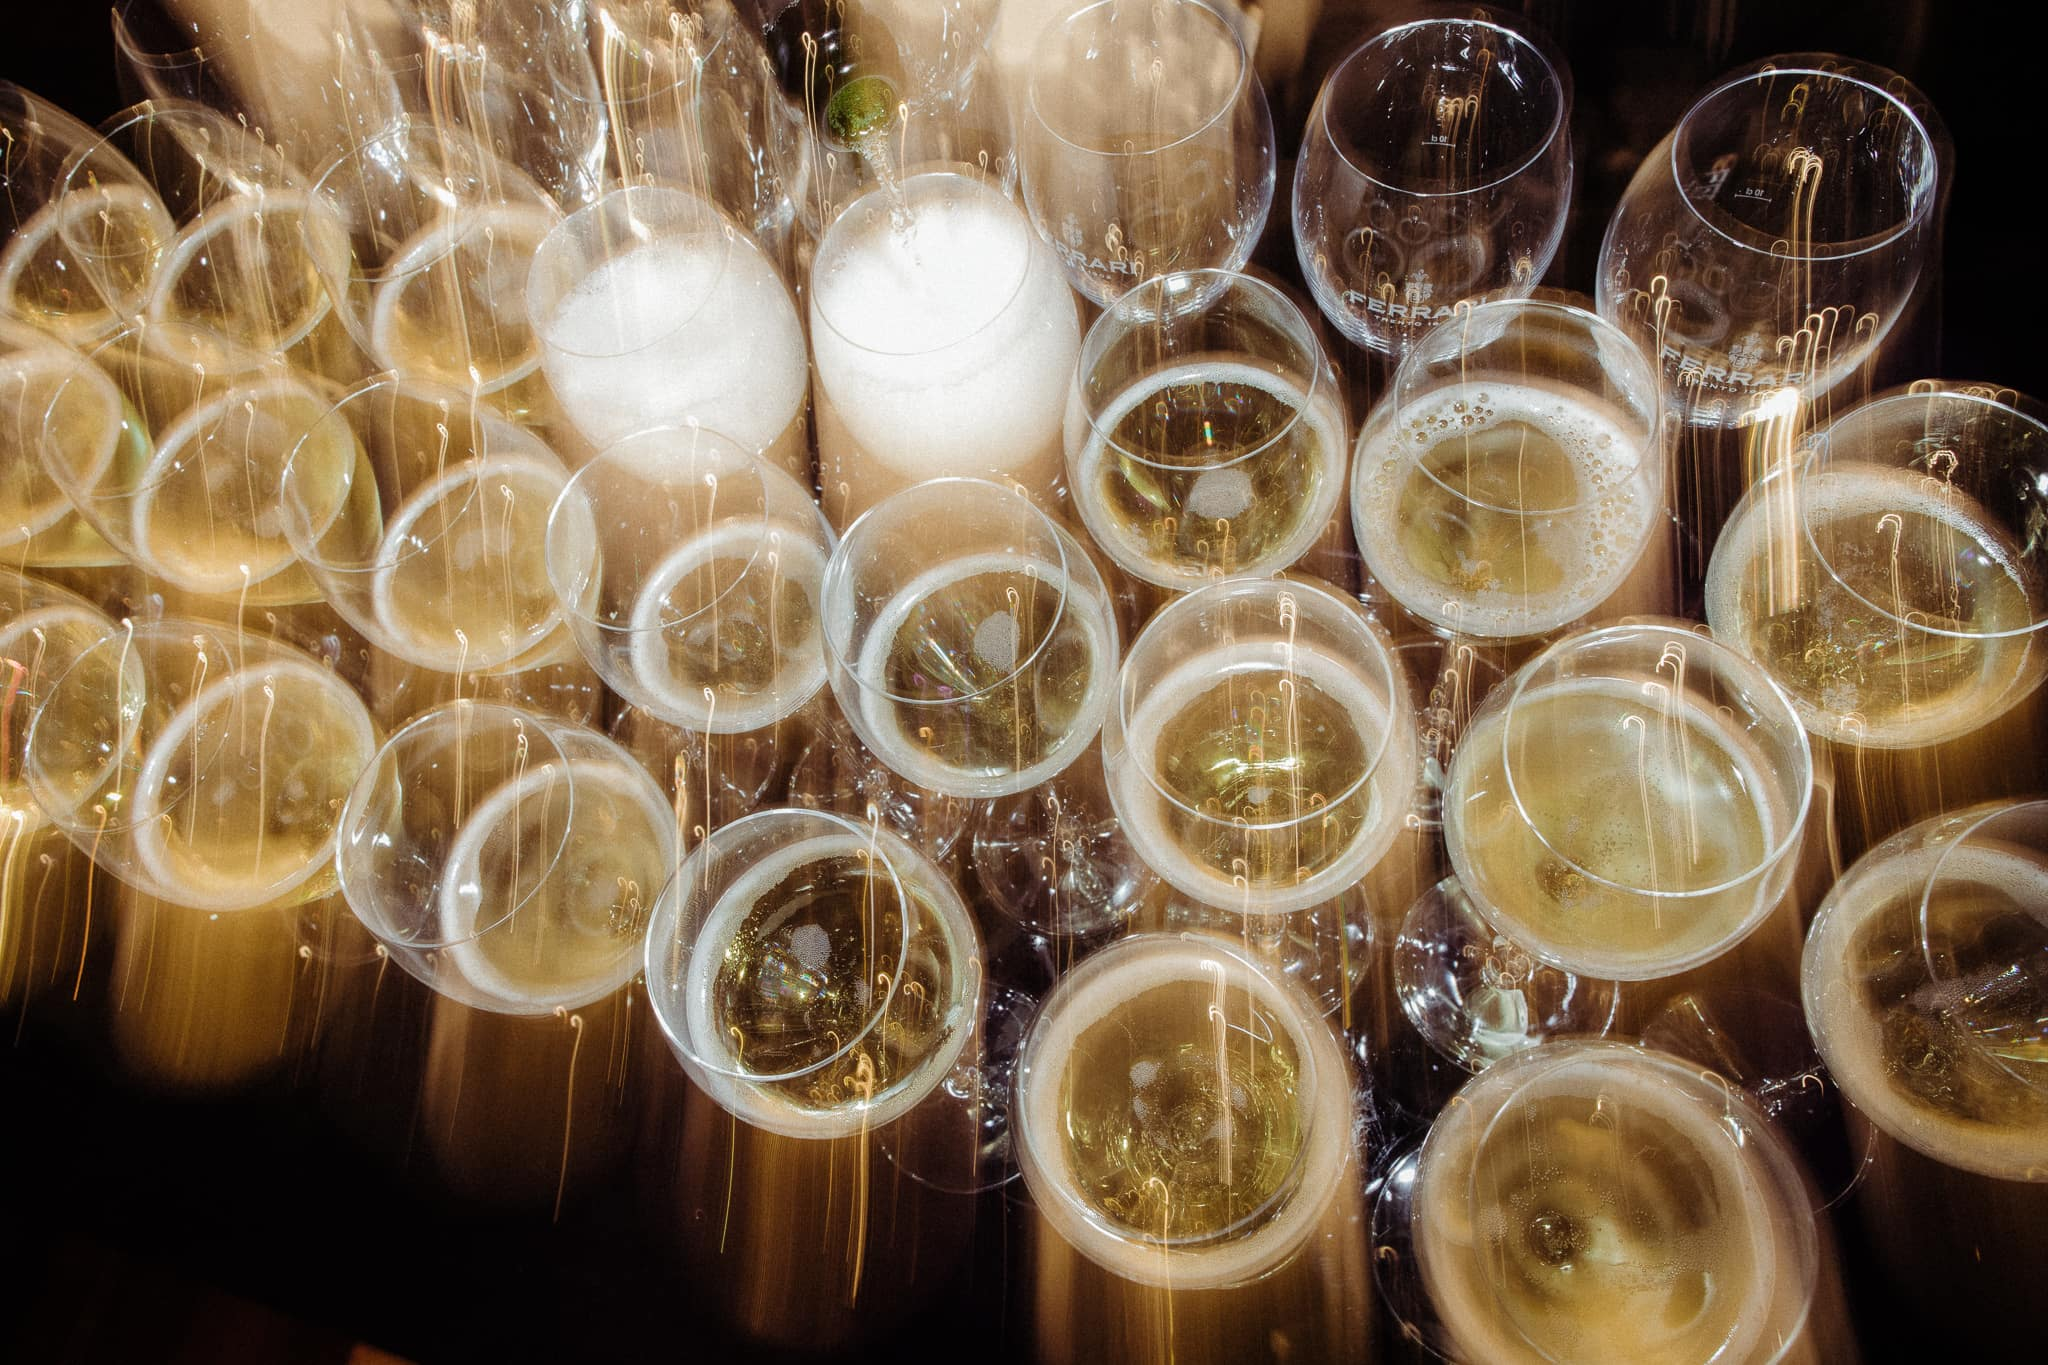 creative photo of champagne glasses - best photos